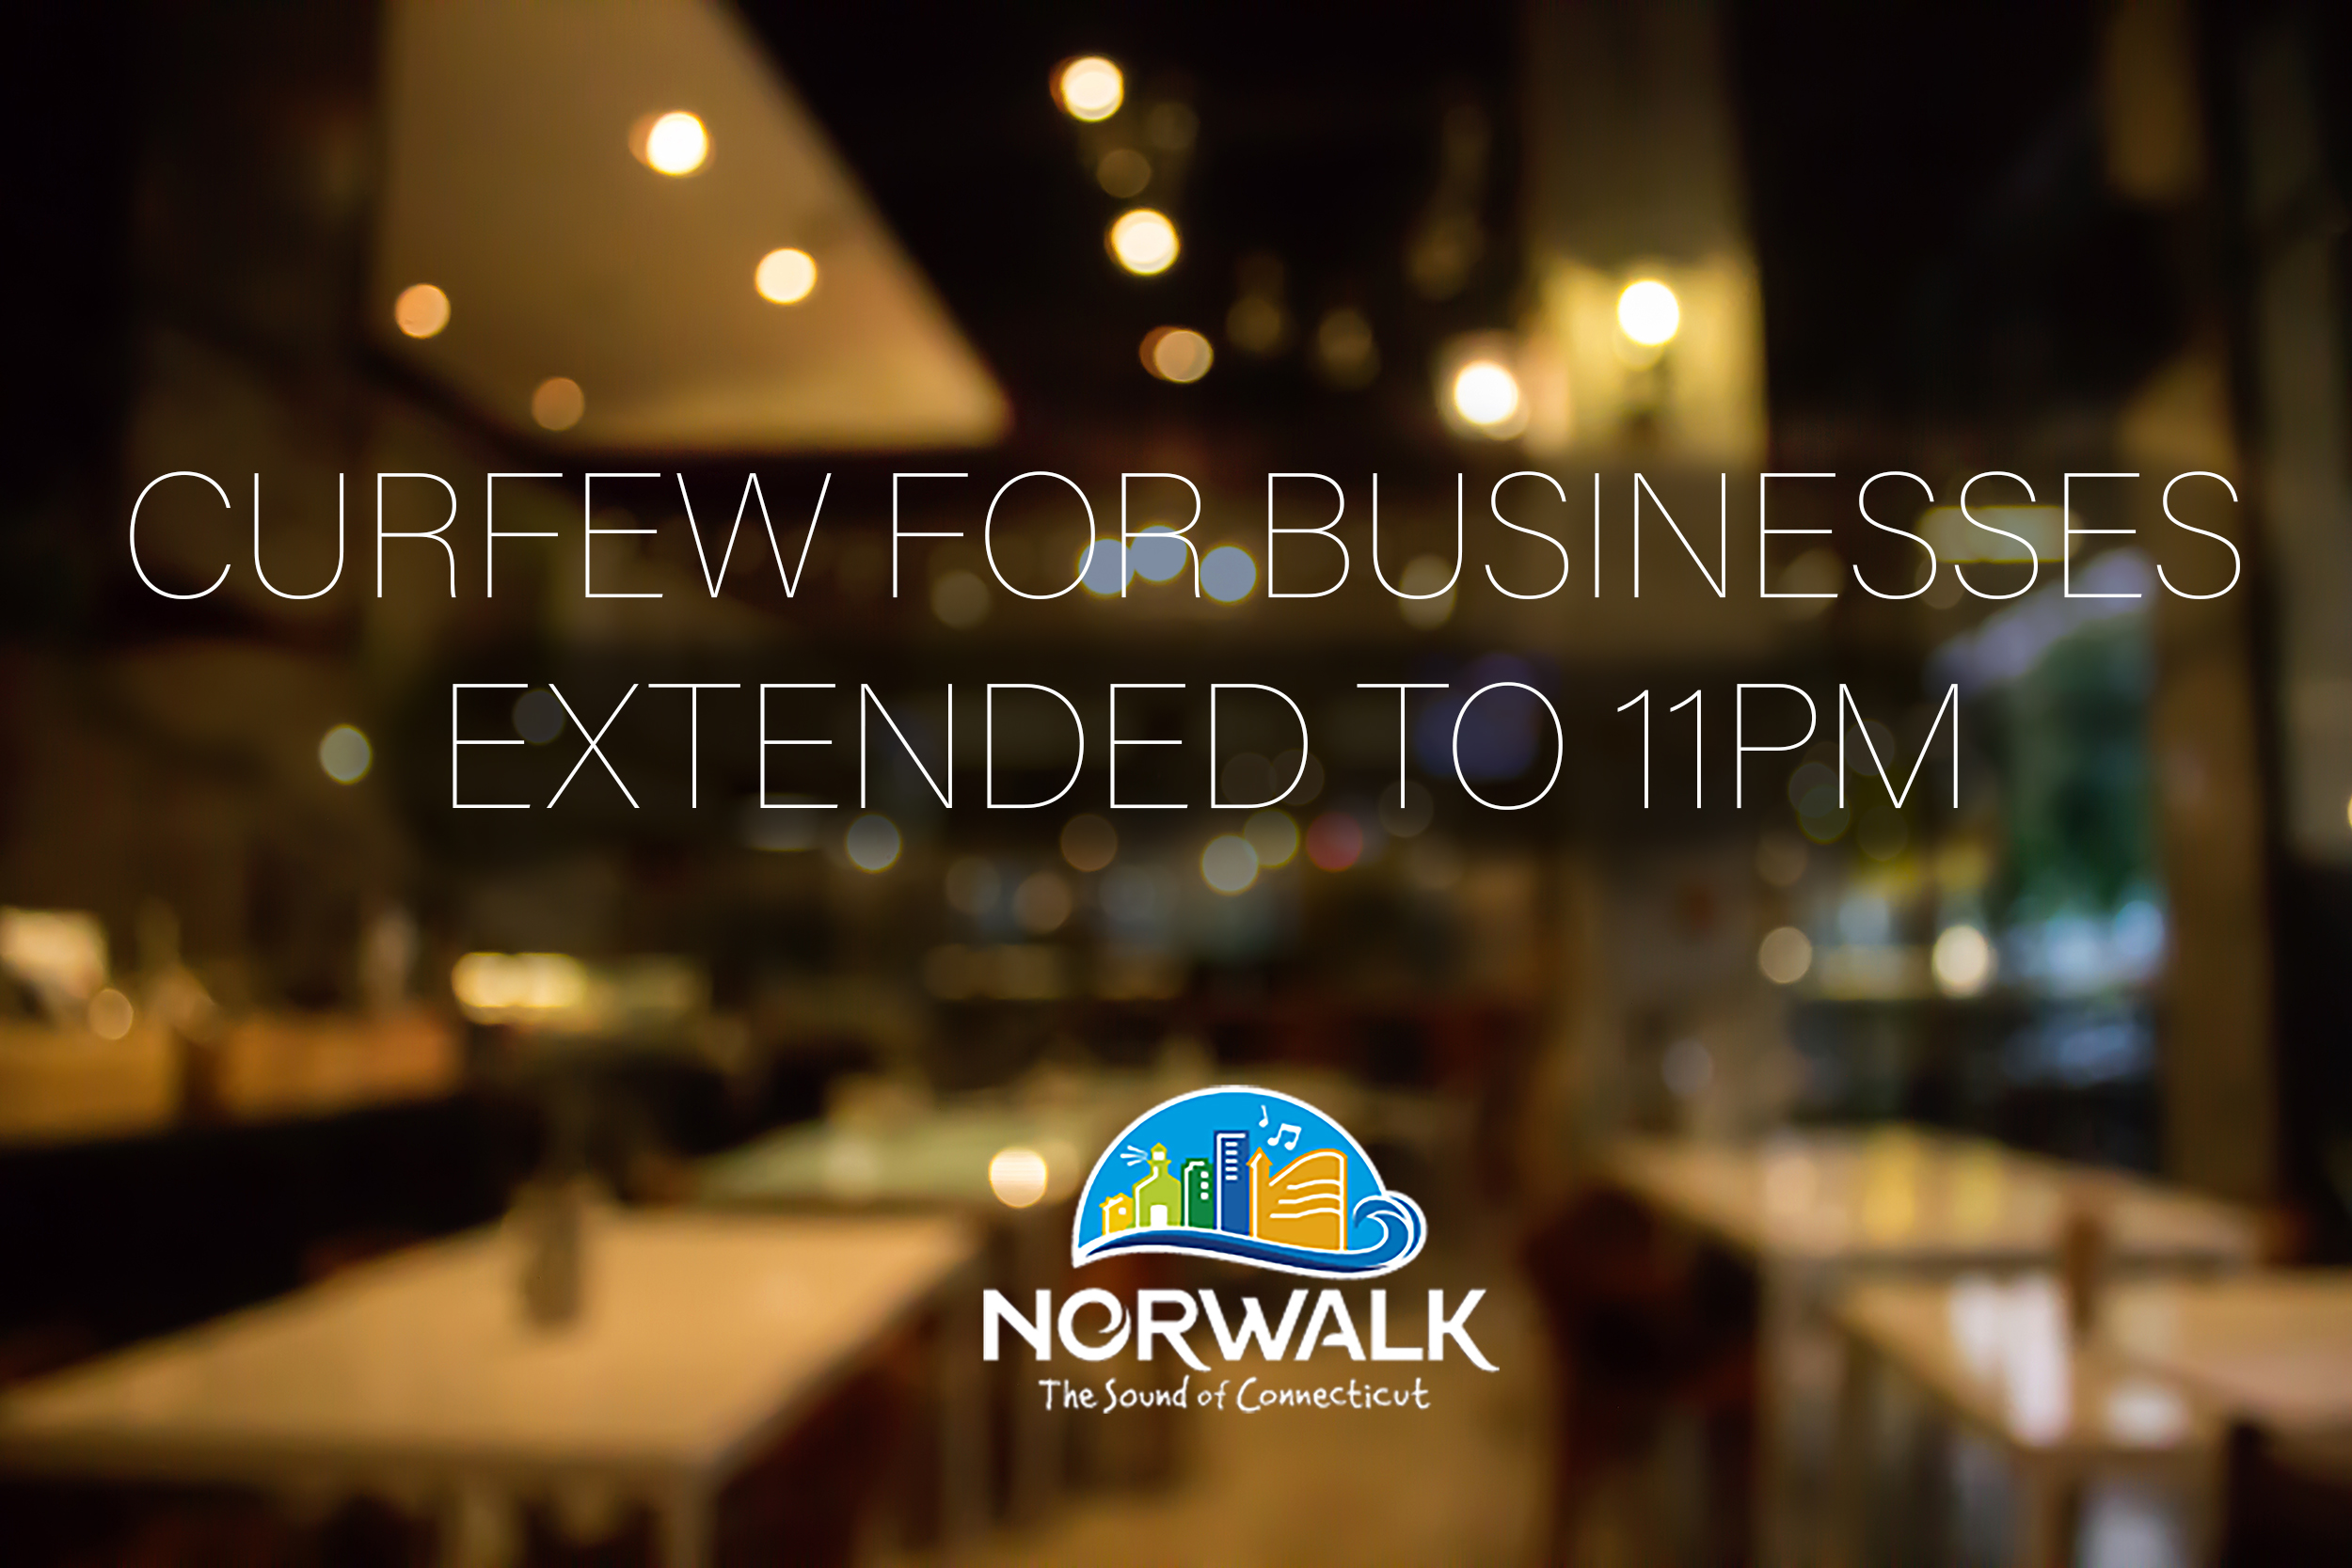 curfew for businesses extended to 11 pm text on top of blurred restaurant with norwalk logo on the bottom of the image